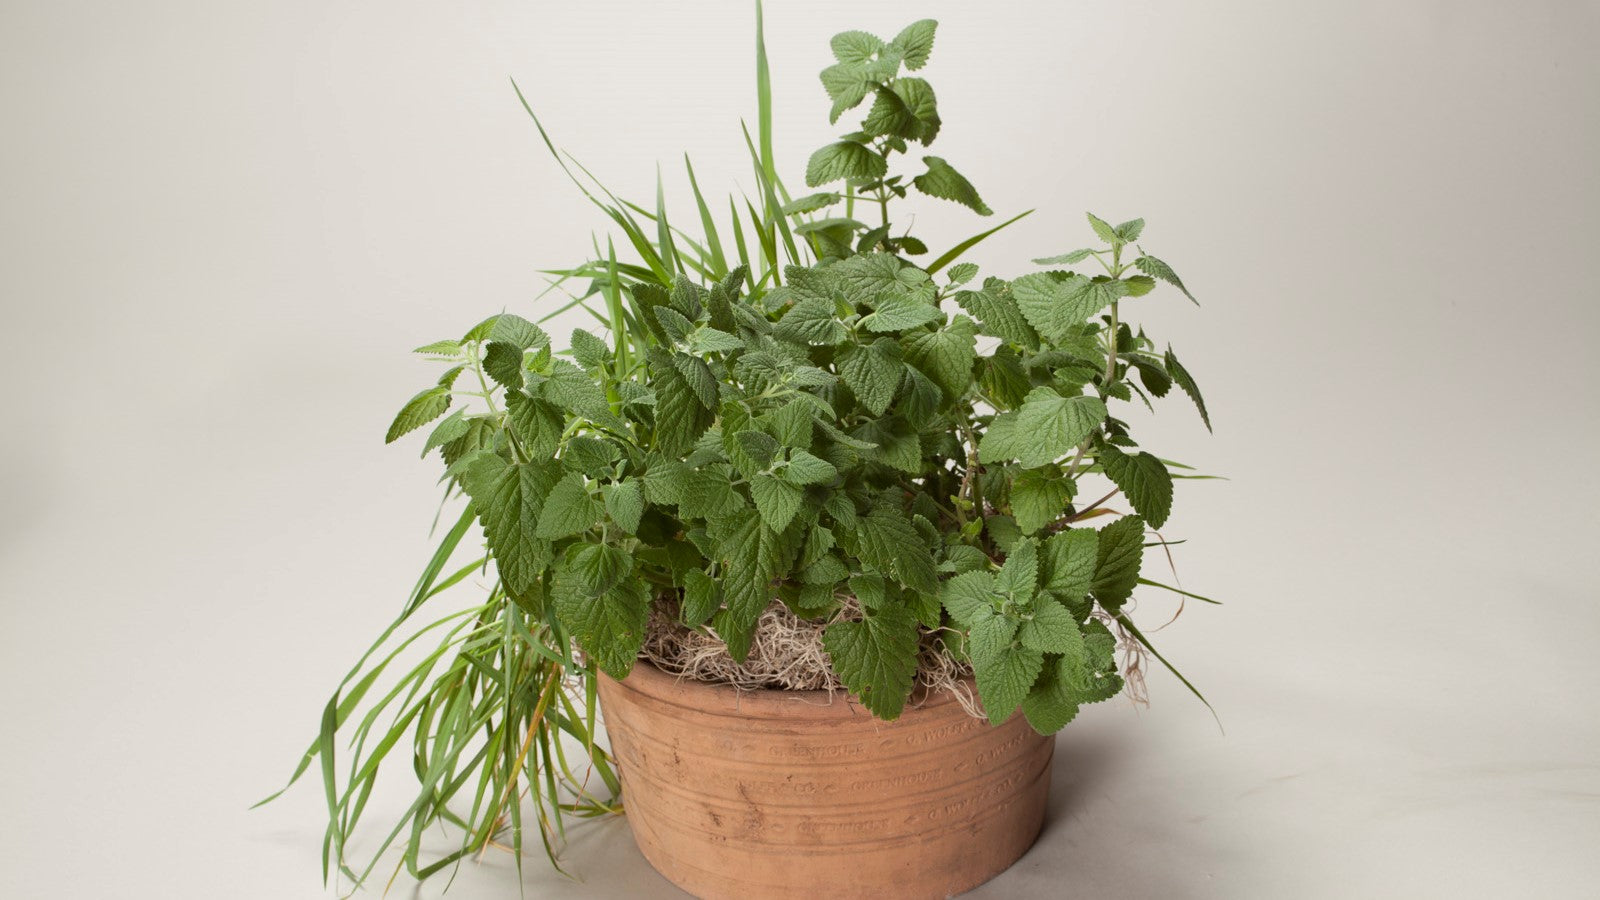 Hints for Healthy Indoor Herbs!